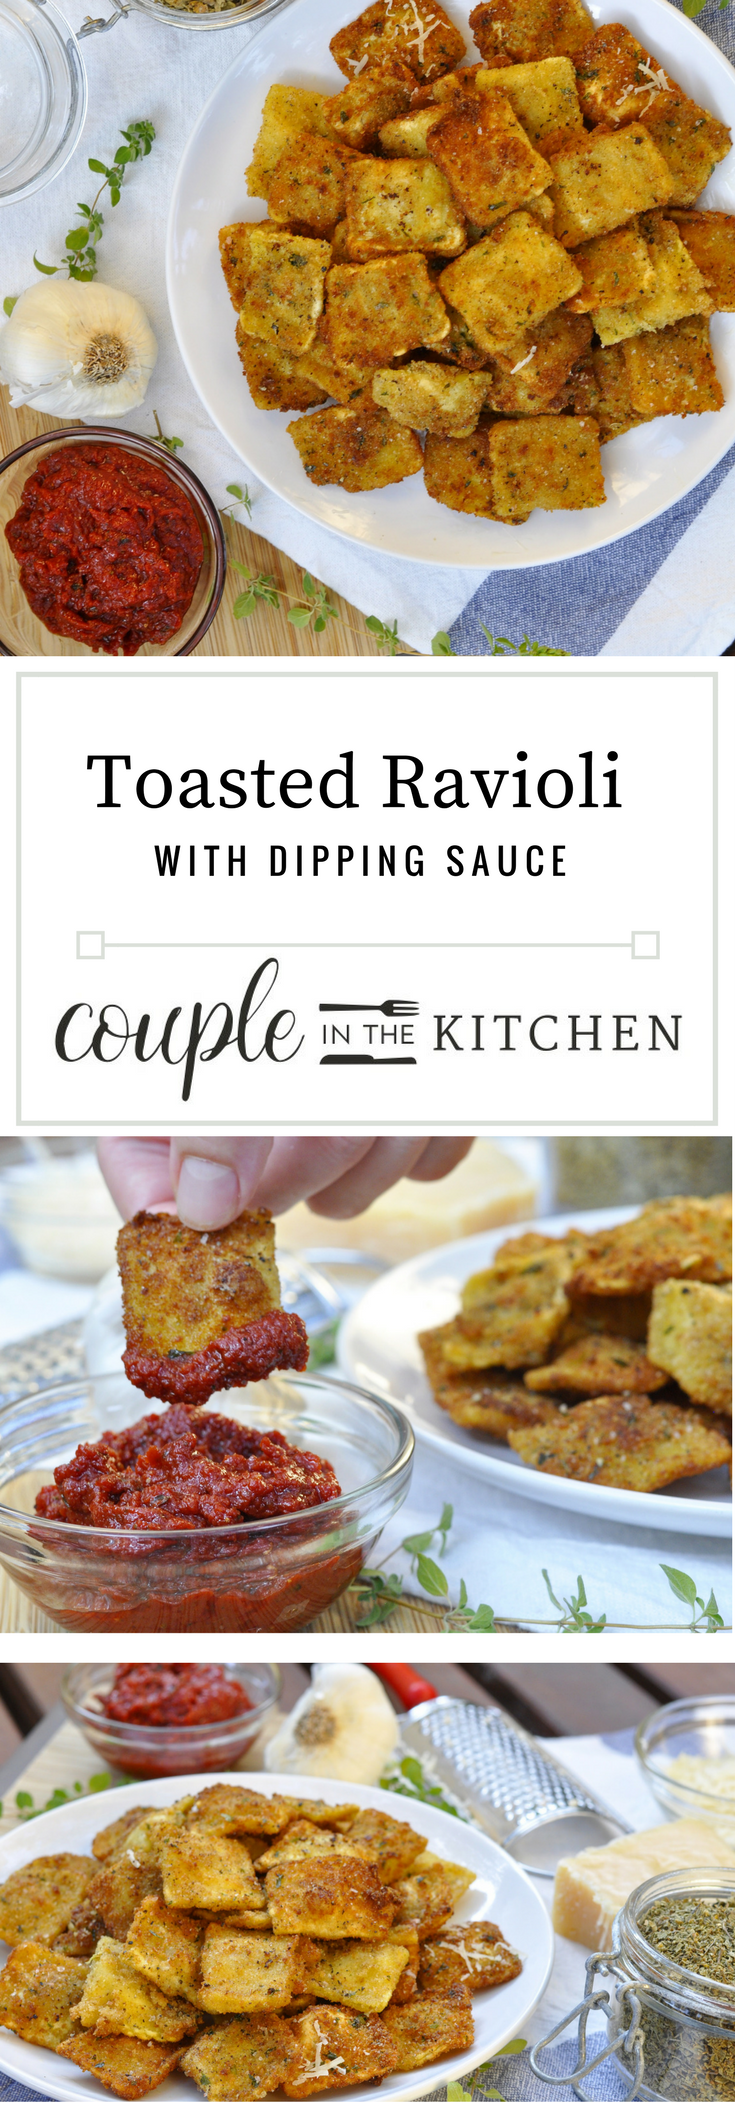 Toasted Ravioli Recipe | coupleinthekitchen.com